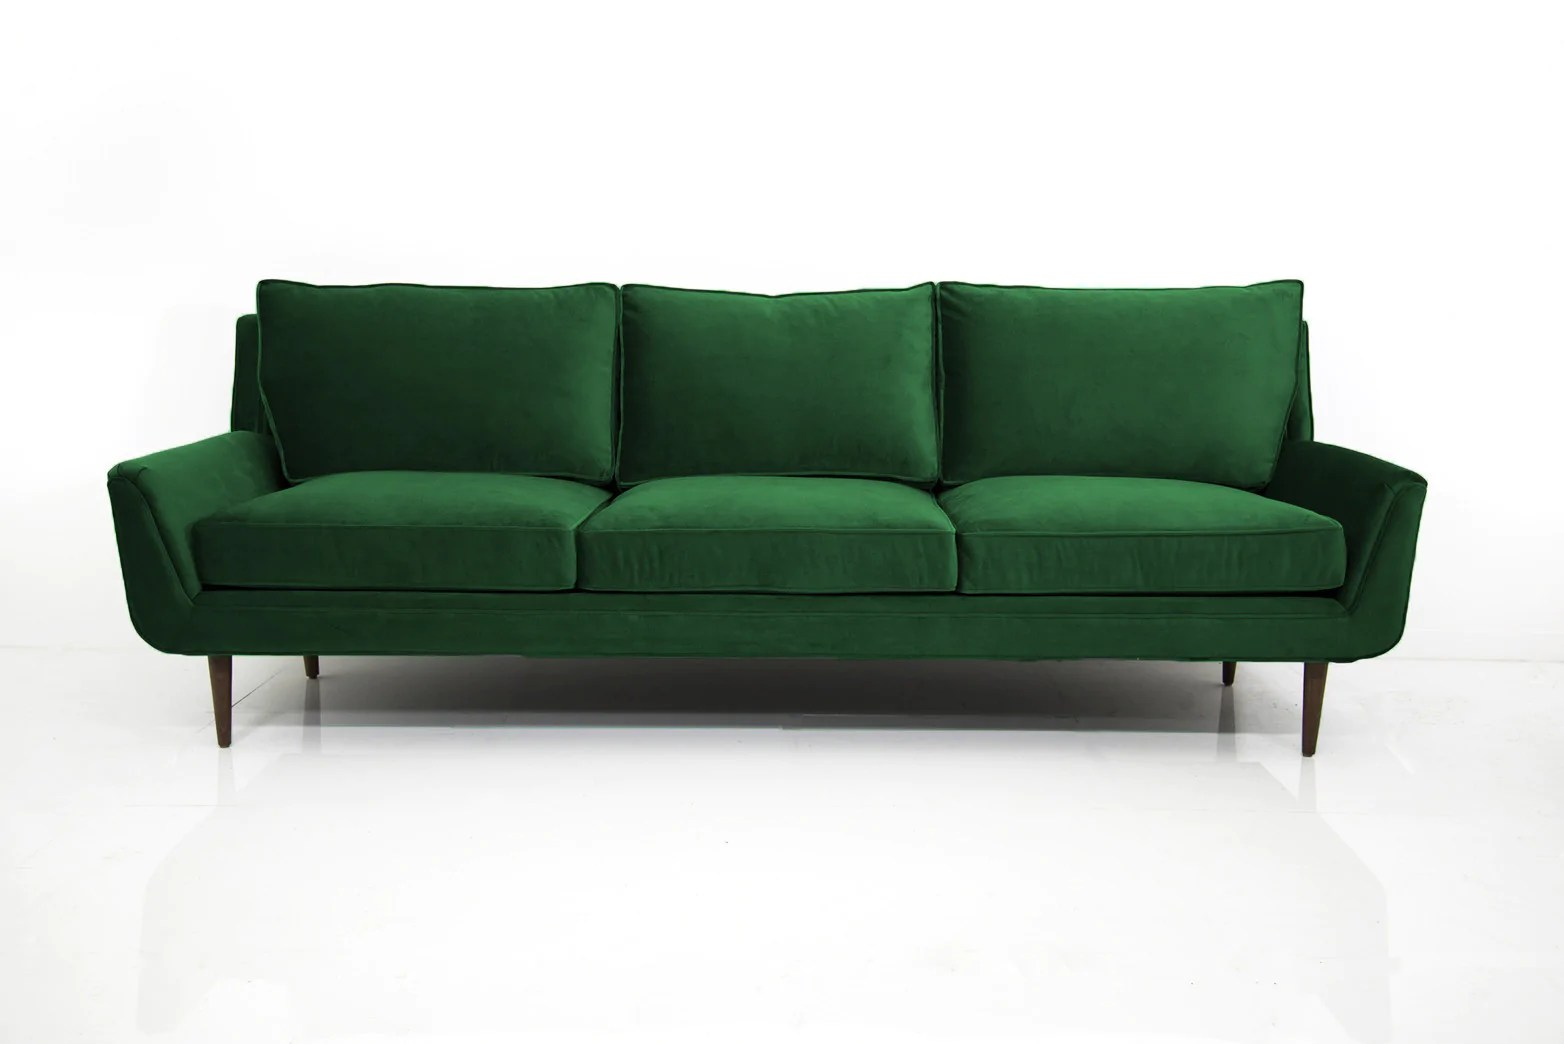 sofa bed green velvet broken leg stockholm in emerald modshop